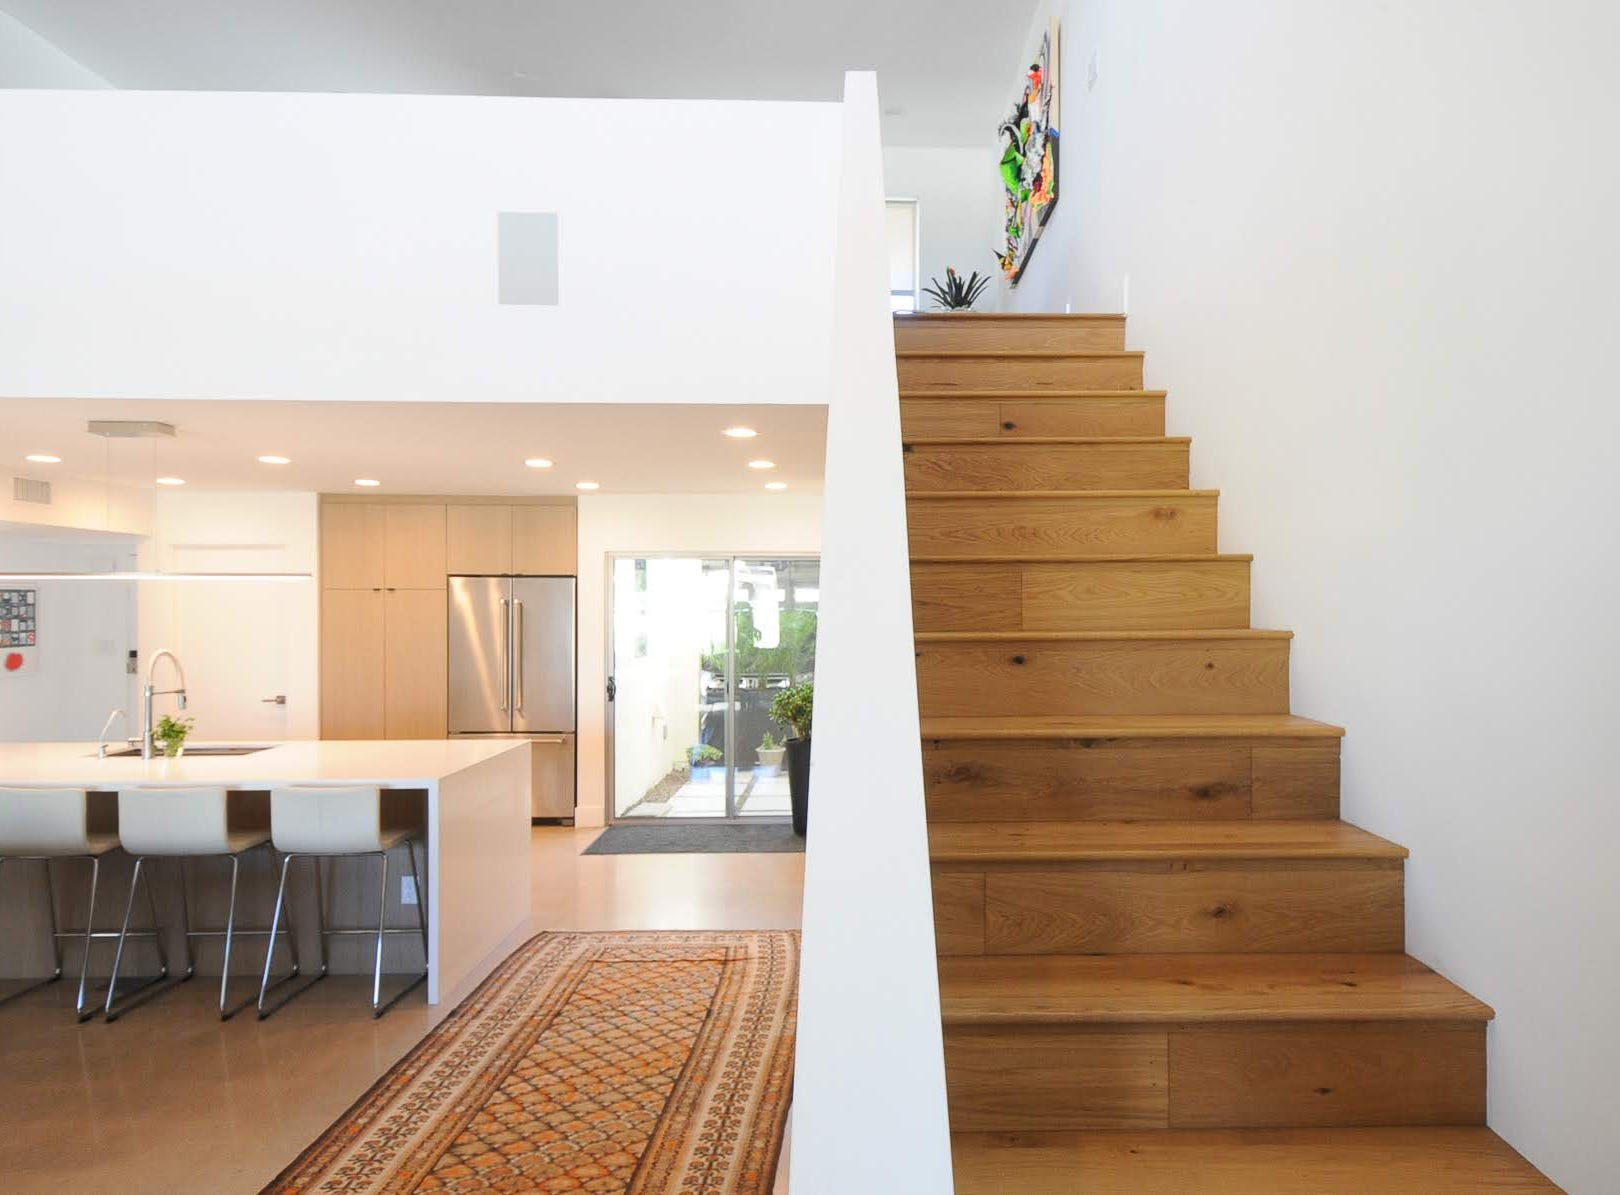 The new staircase, wood instead of metal, leads to a loft on the second level.